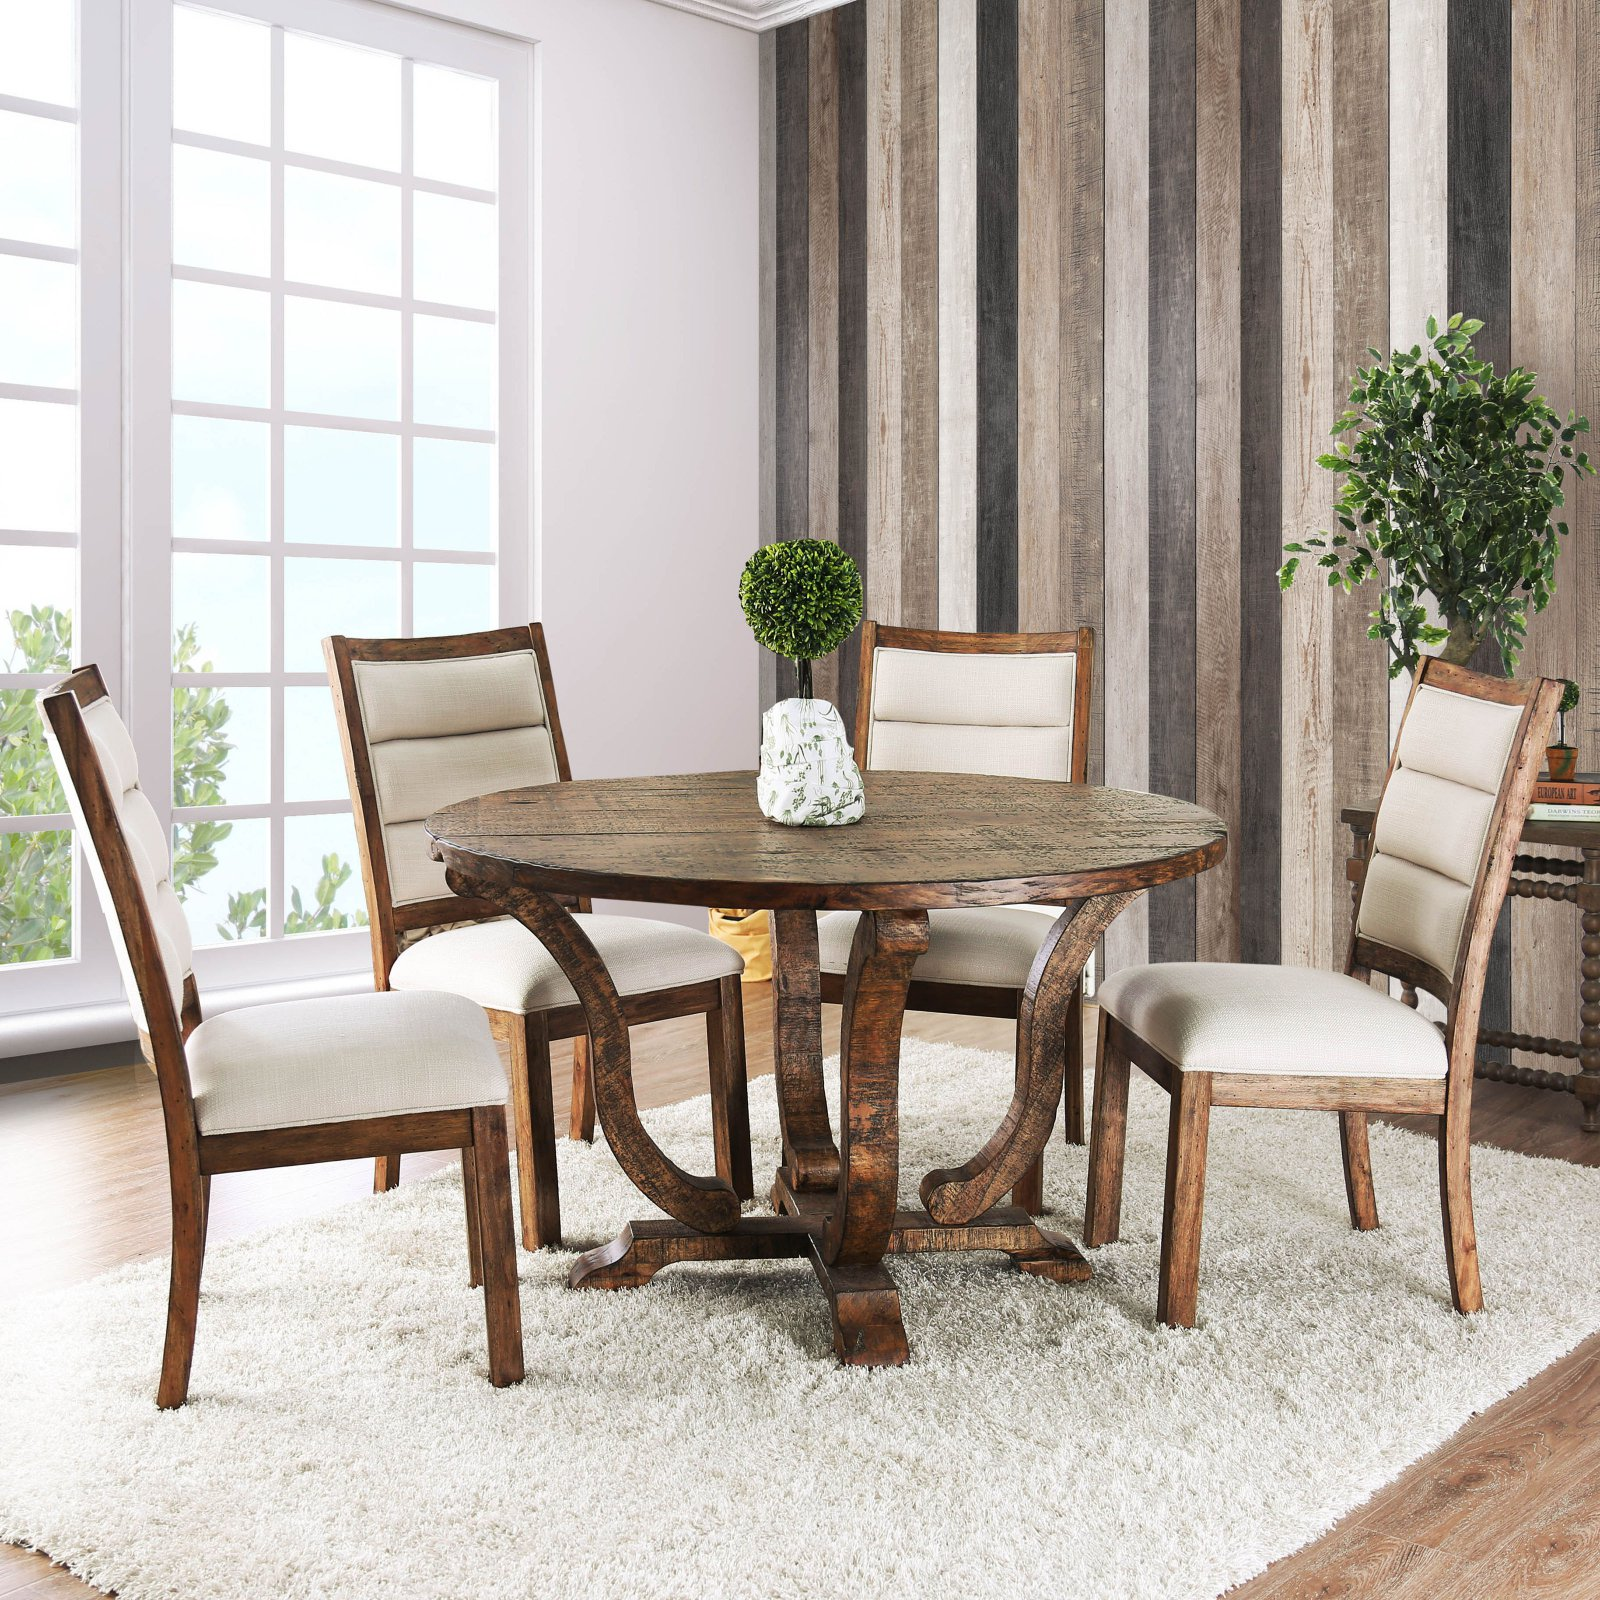 Furniture Of America Wenslow 5 Piece Rustic Round Dining Table Set